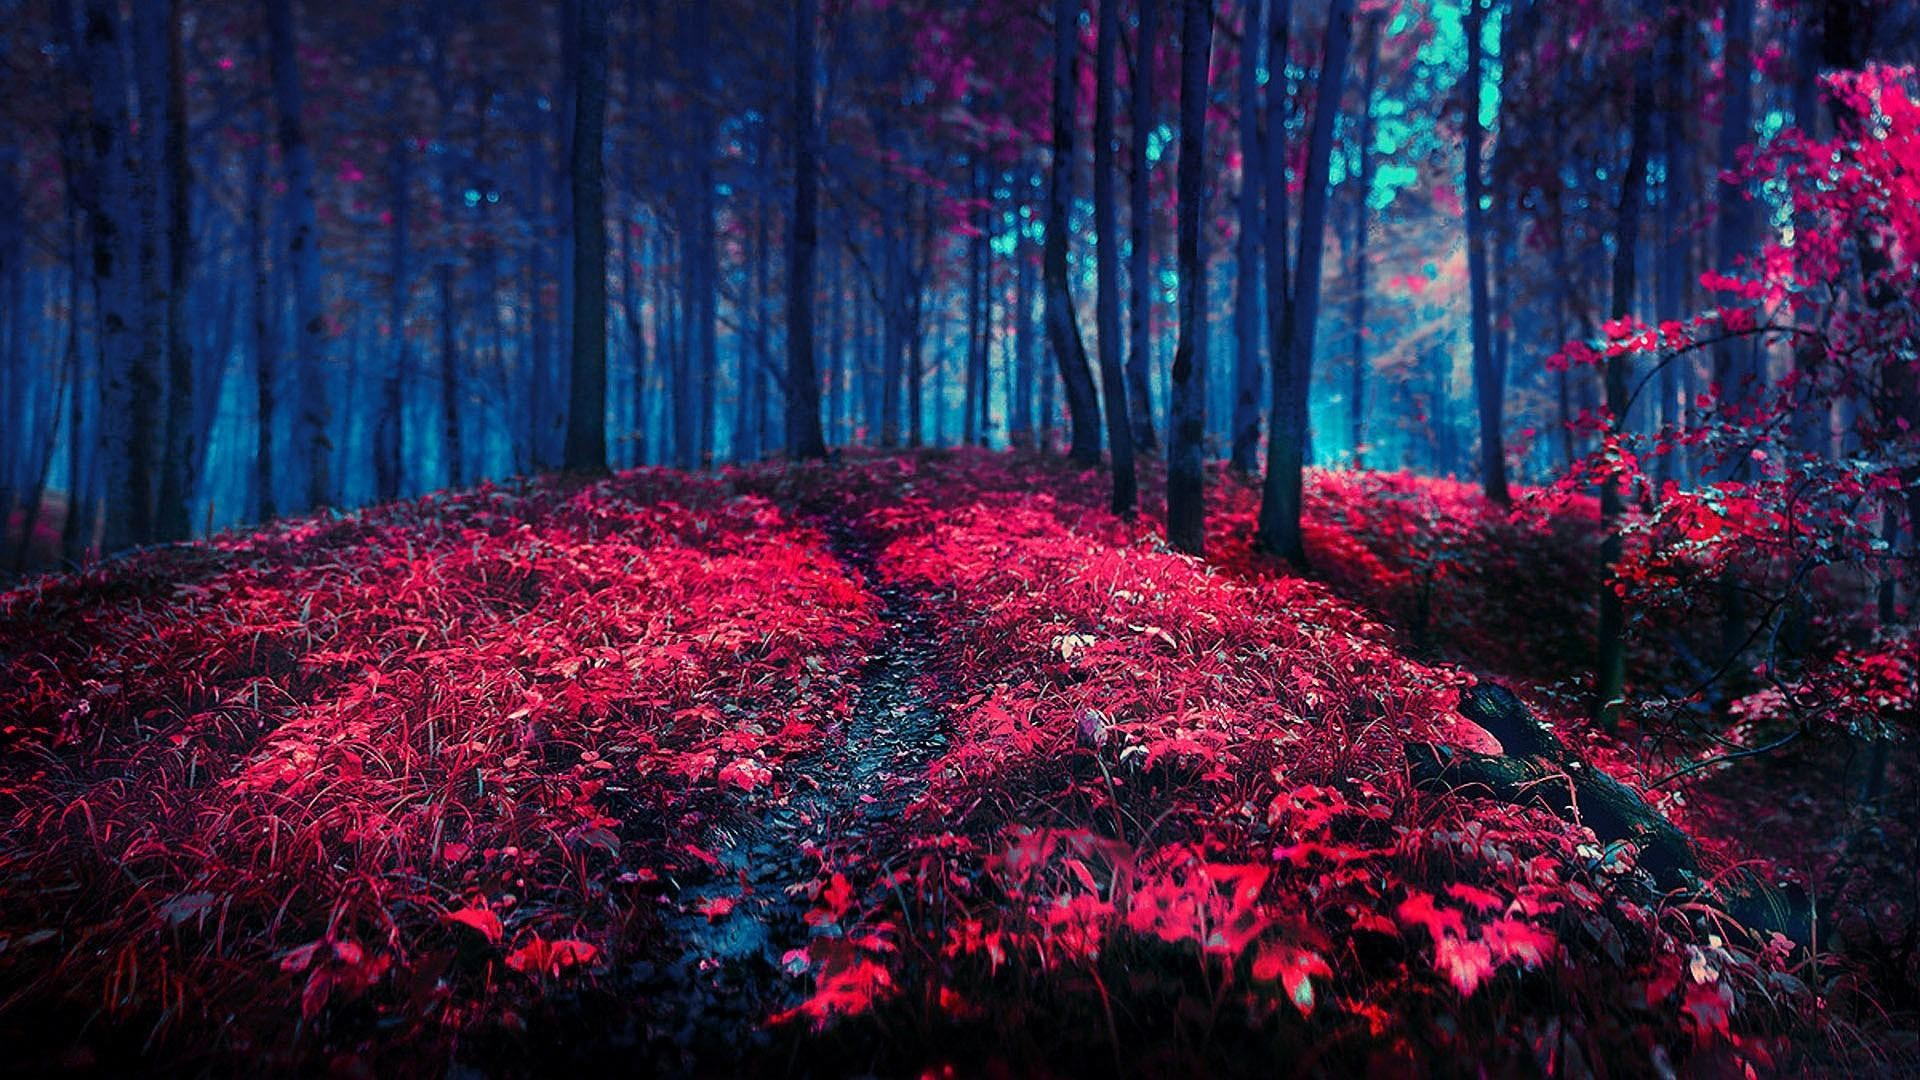 1920x1080, Red Nature Wallpaper   Data Id 367631   - Lovely Nature Images Hd - HD Wallpaper